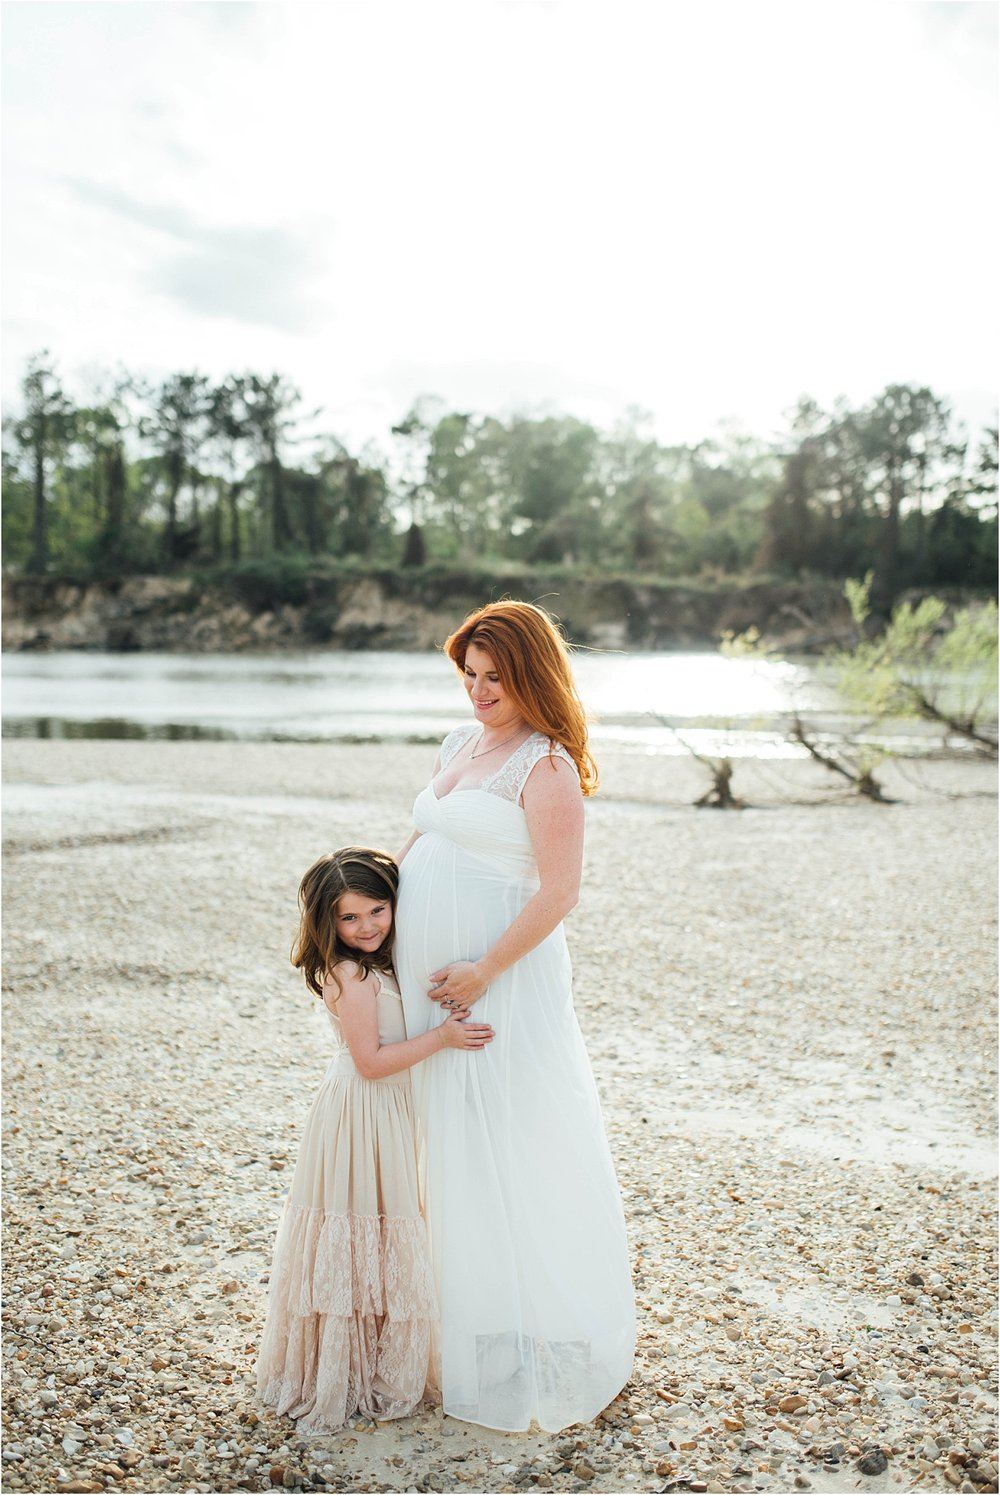 Sarah + Charlotte-Mommy-and-Me-Amite-River-Maternity-Photos_Gabby Chapin_Print_0003_BLOG.jpg